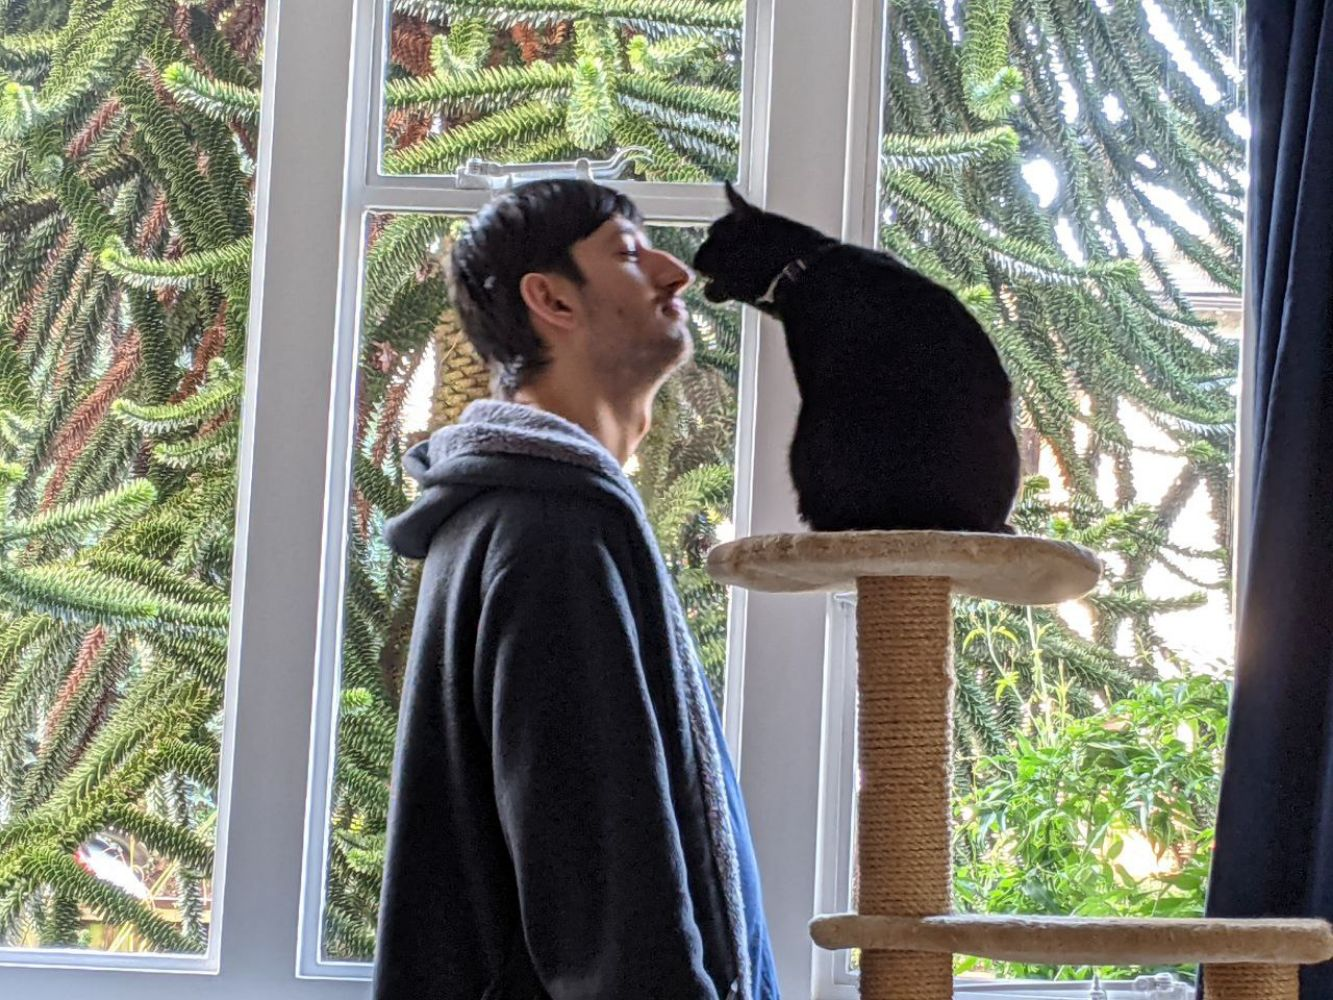 Jamie standing next to a cat tower with a black cat, Morph, sitting on top of it, reaching over to Jamie while trying to bite his nose, while Jamie looks at him calmly, slightly leaning back to avoid his nom